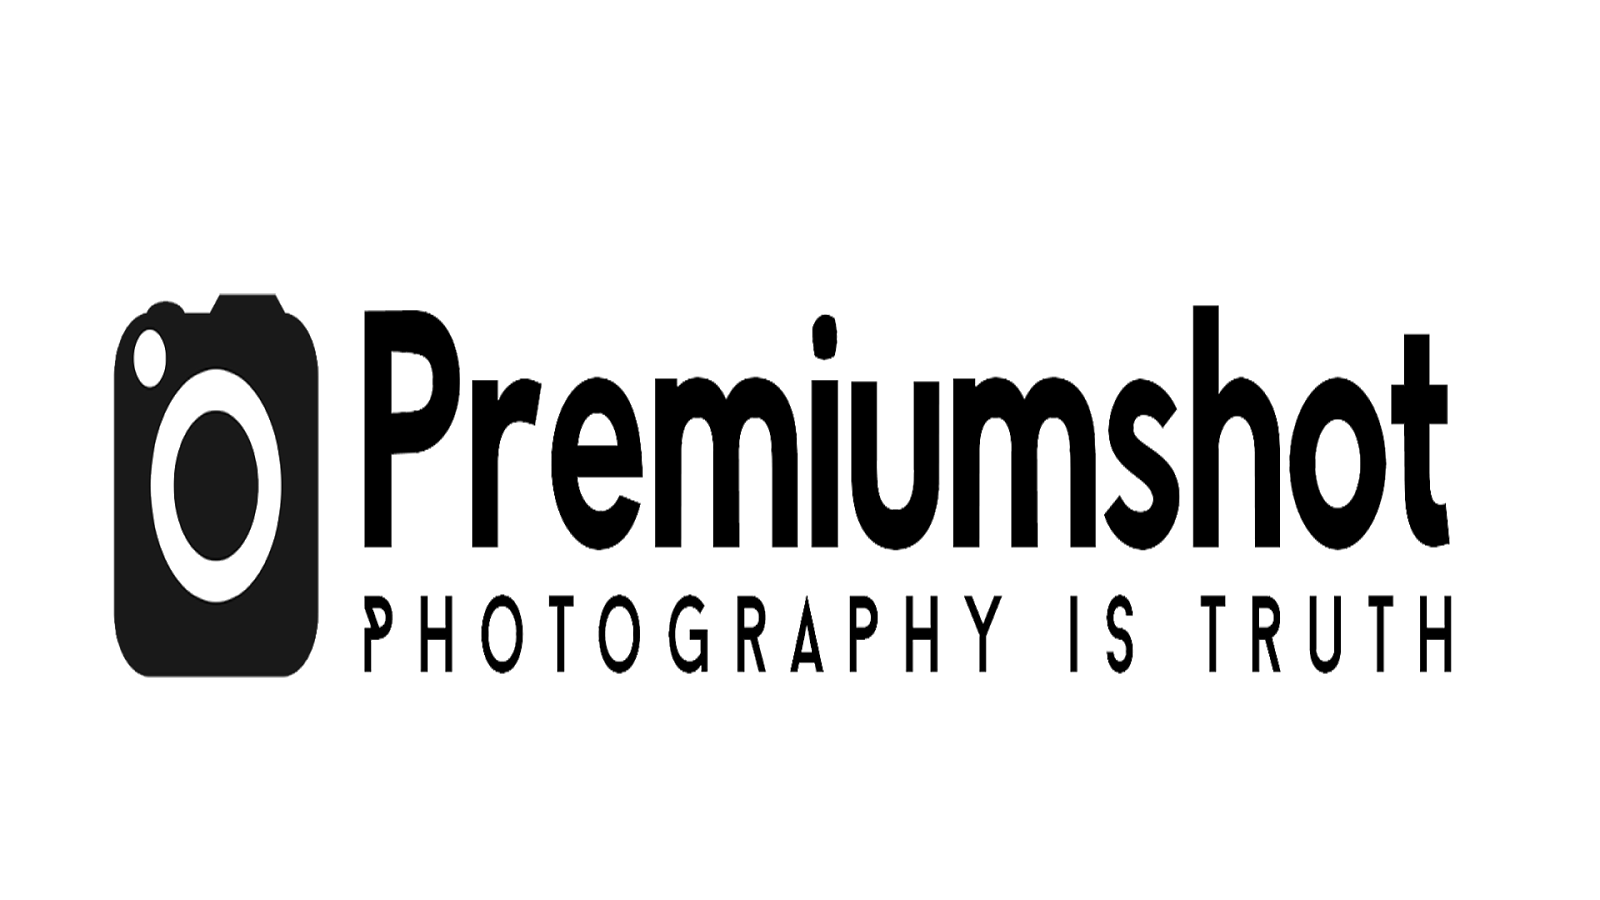 Premiumshot - Photography is truth